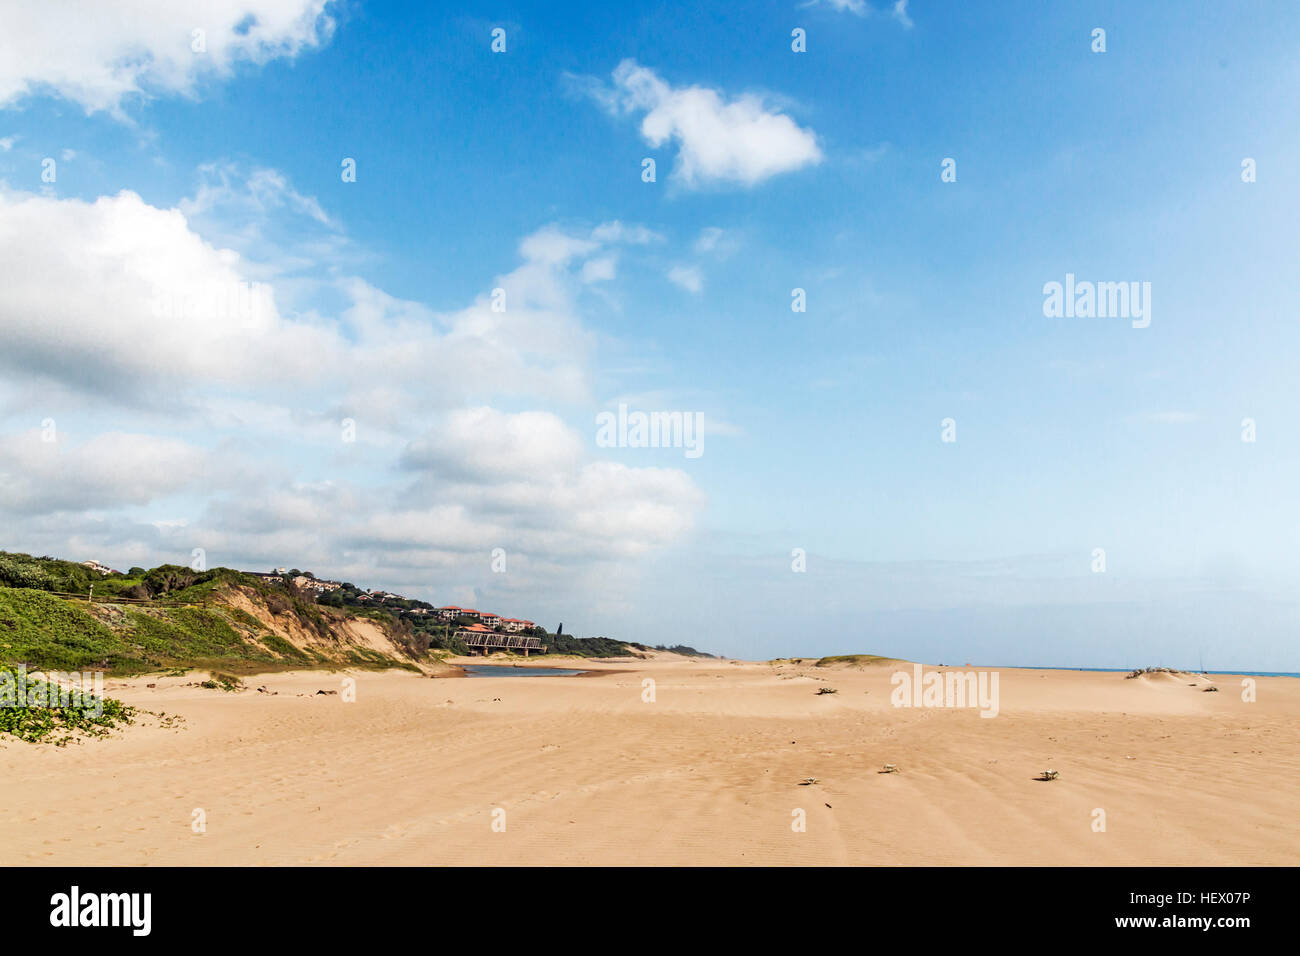 Indigenous plant growing in the beach sand on dune on beach landscape Stock Photo